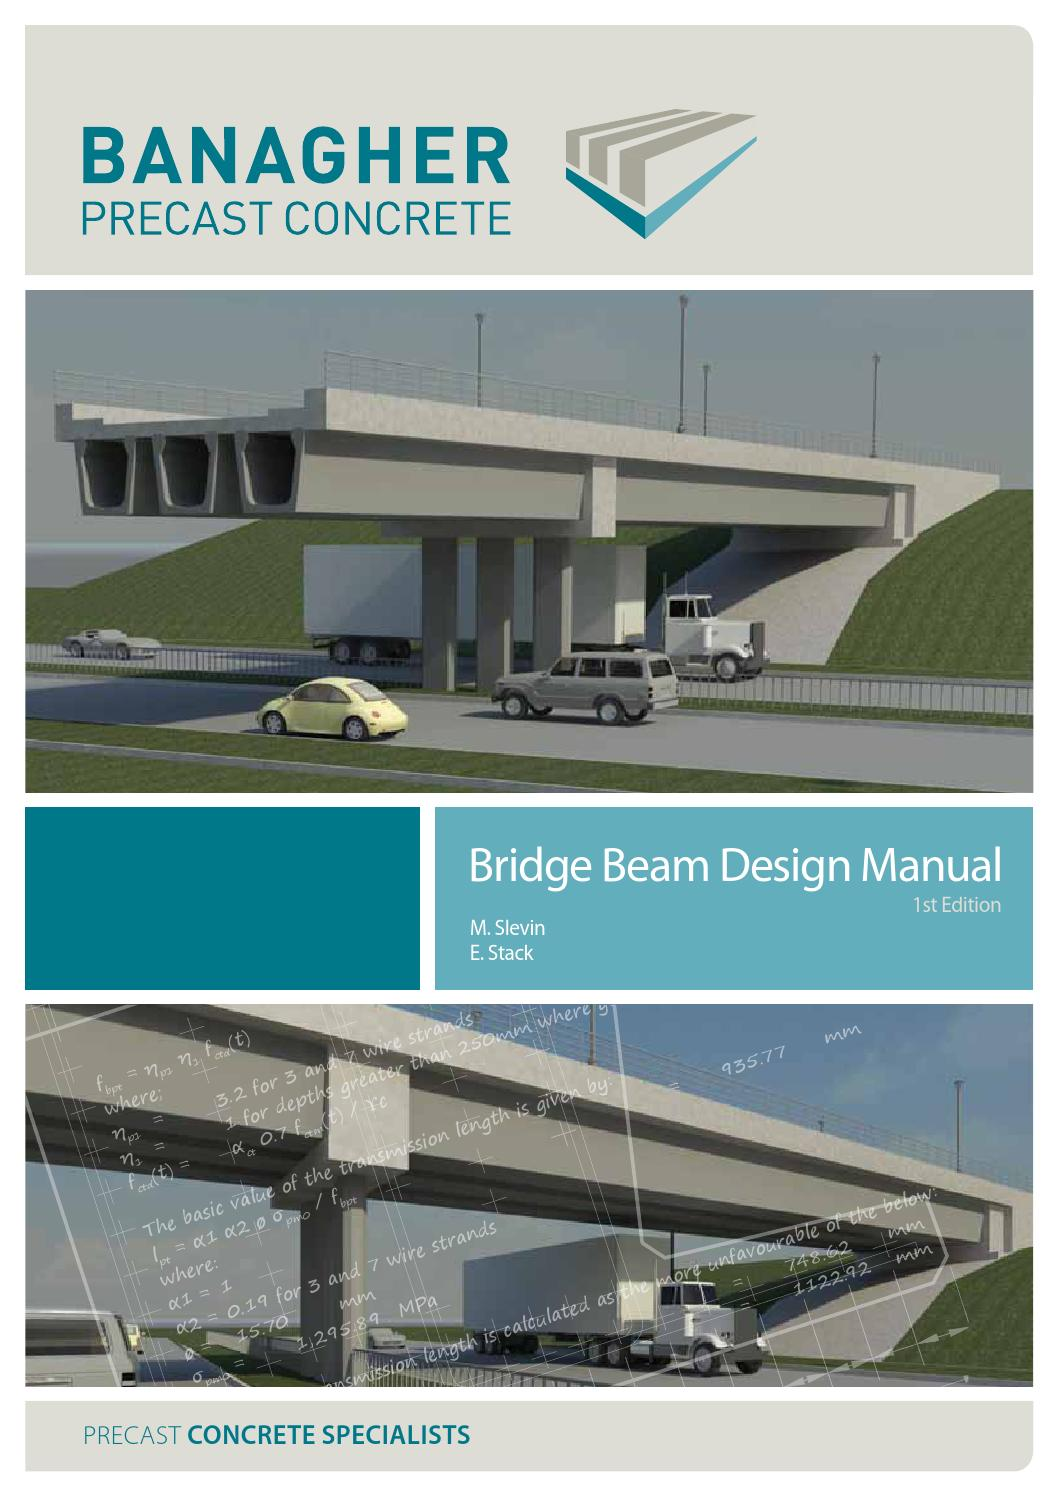 Banagher concrete design manual teaser by Banagher Precast Concrete - issuu